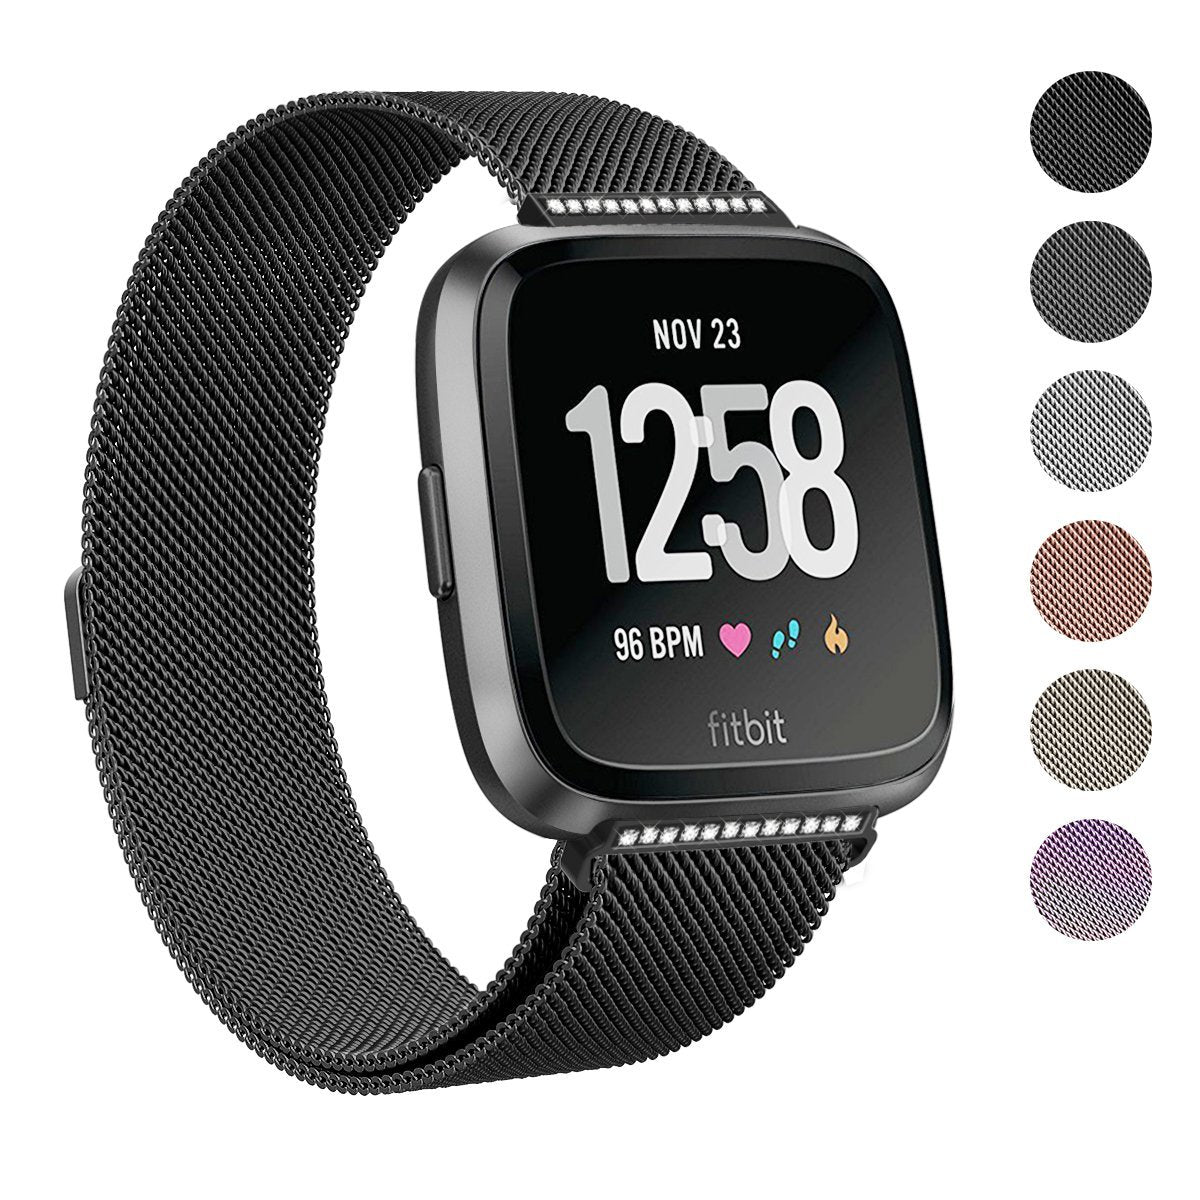 2018 New Fitbit Versa Stainless Steel Magnetic Milanese Replacement Alta Hr Smartwatch Small Black Band 55